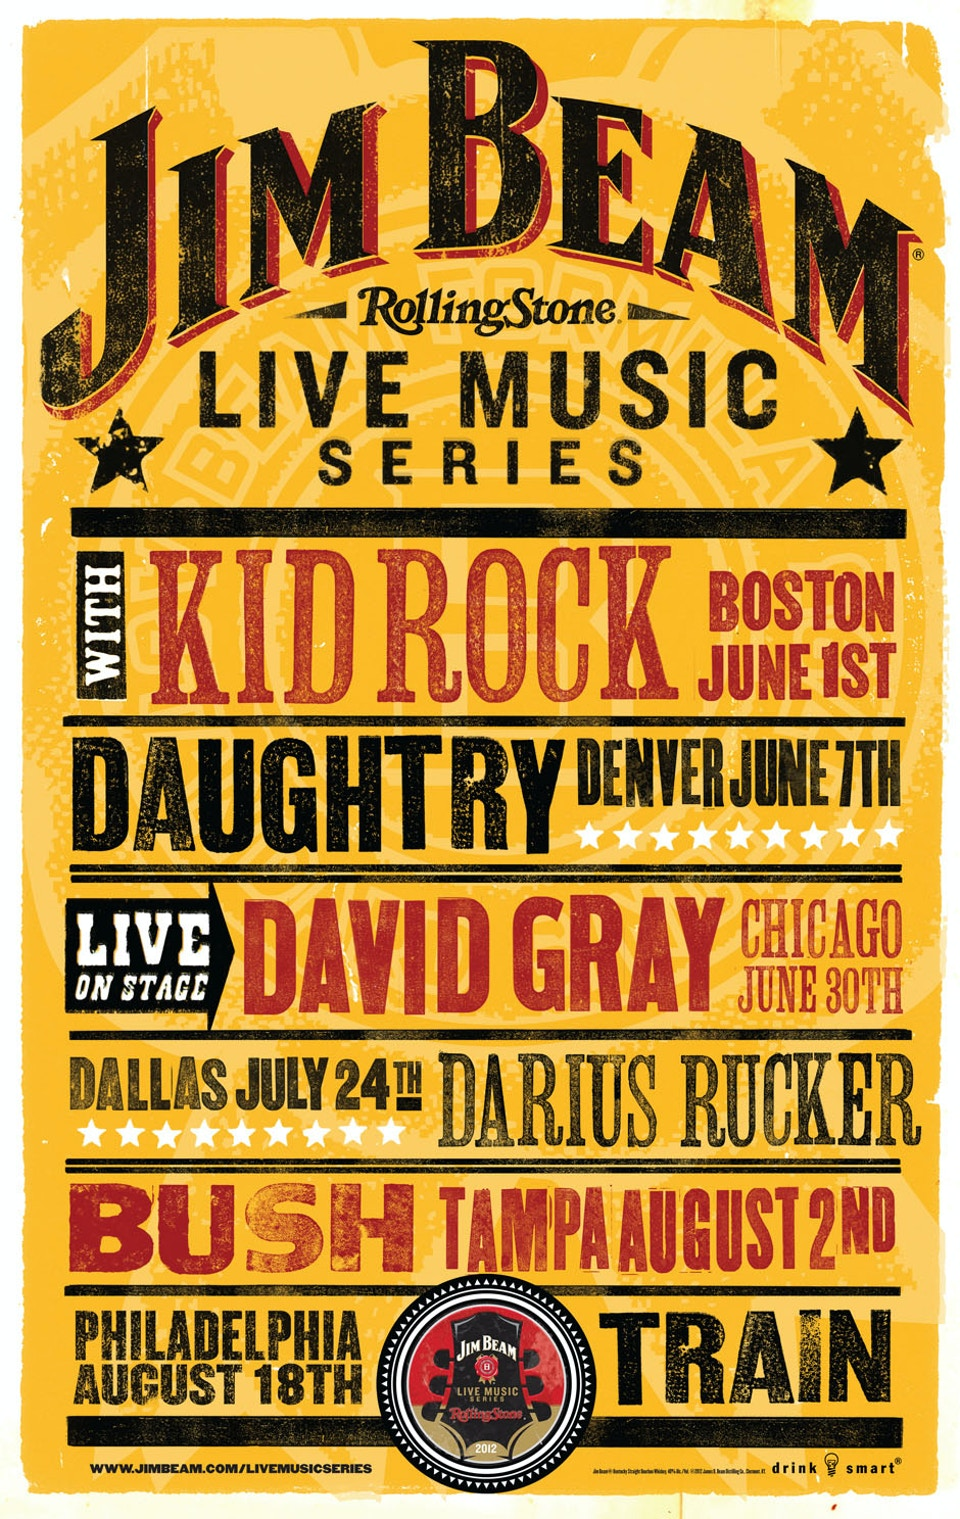 Jim Beam Concert Series Poster